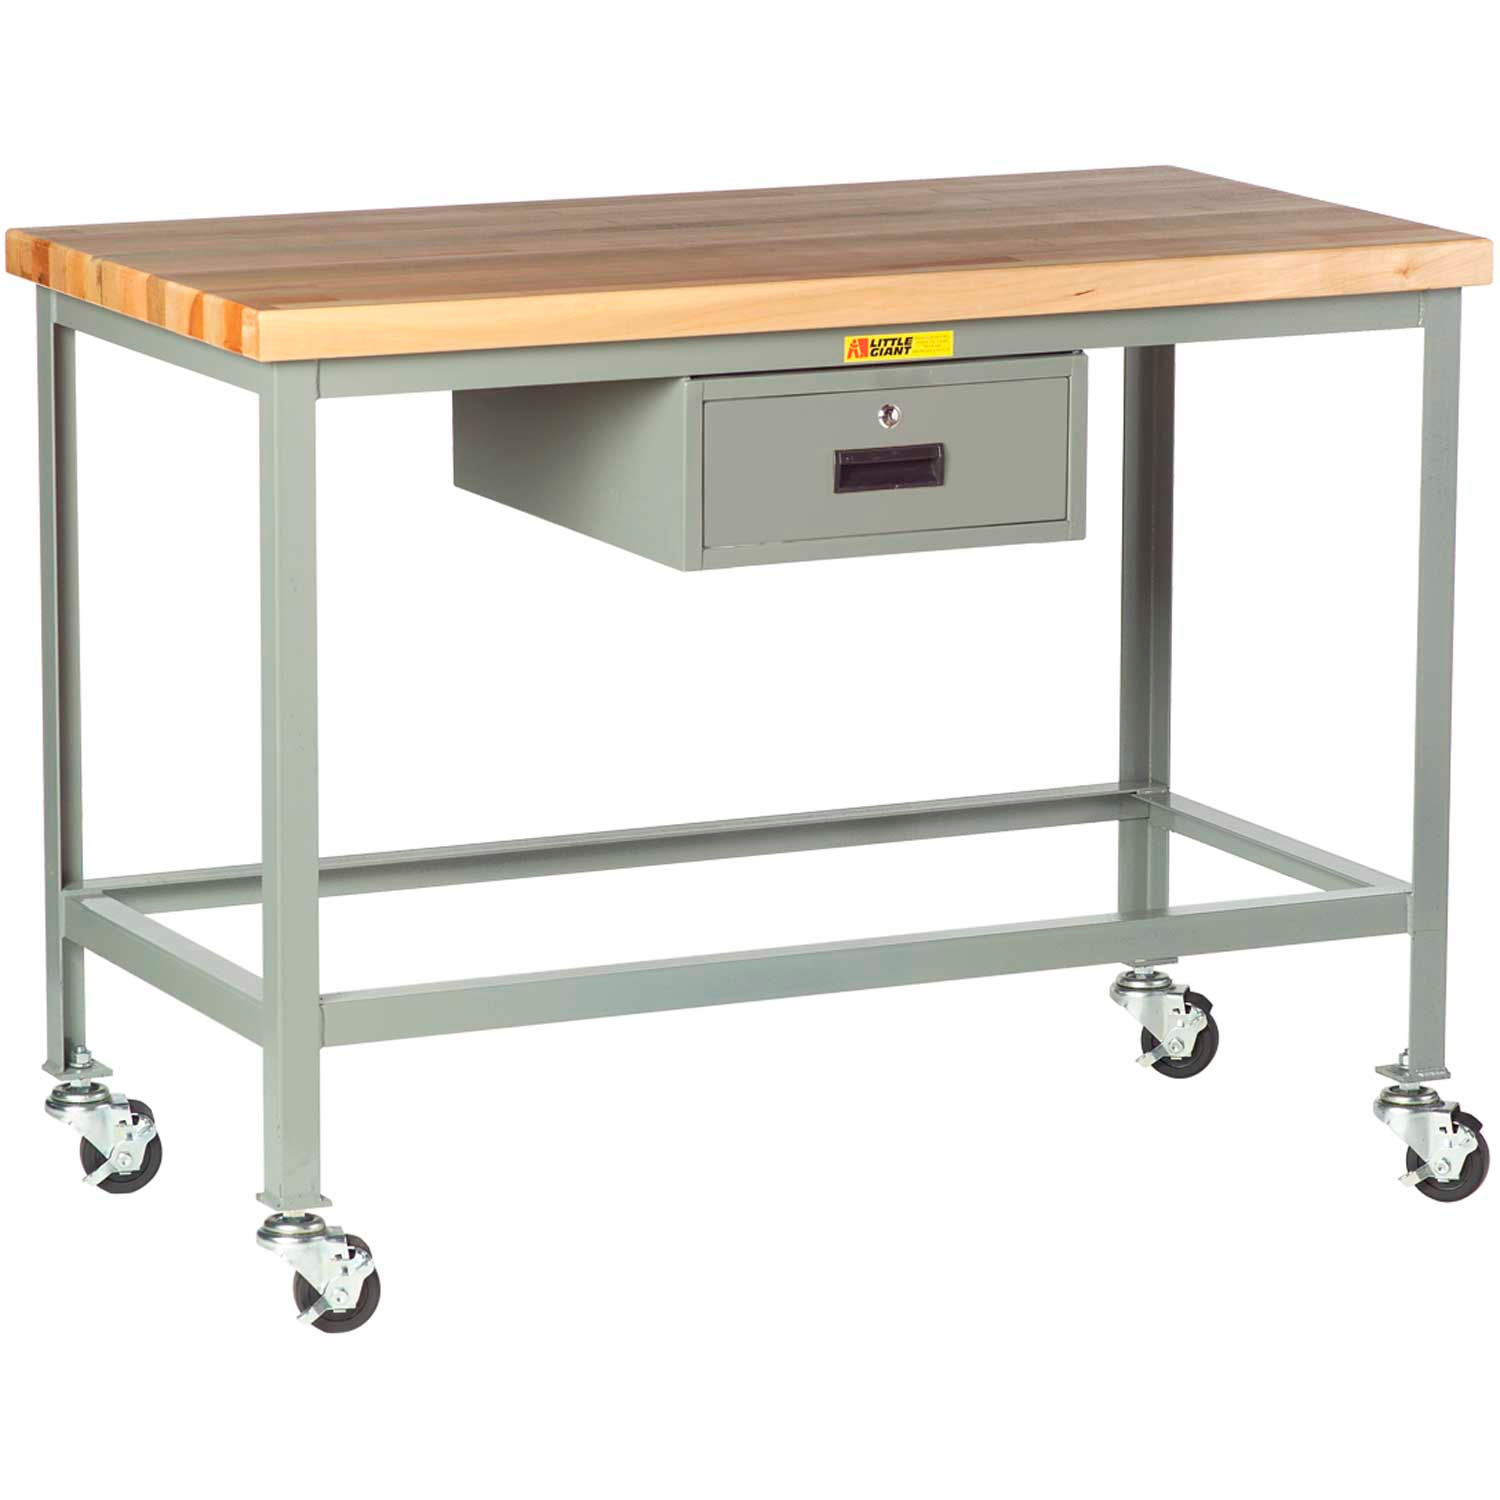 Mobile Work Bench Adjustable Height Little Giant Wt 2448 3r Dr